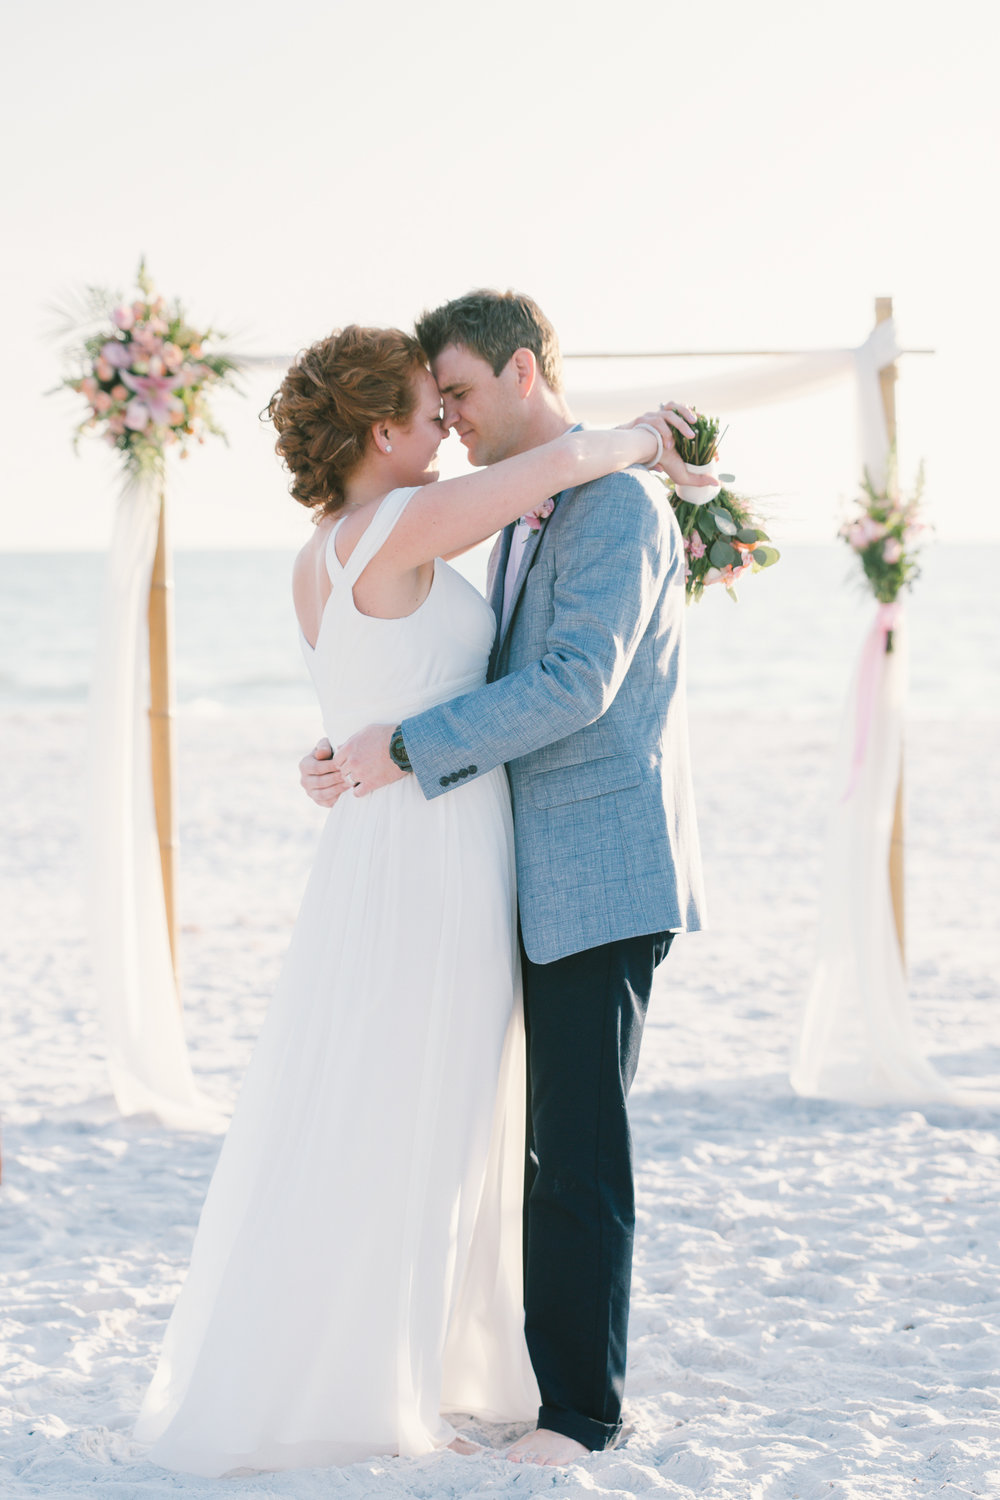 Tide-the-knot-beach-weddings, bride-and-groom-dance